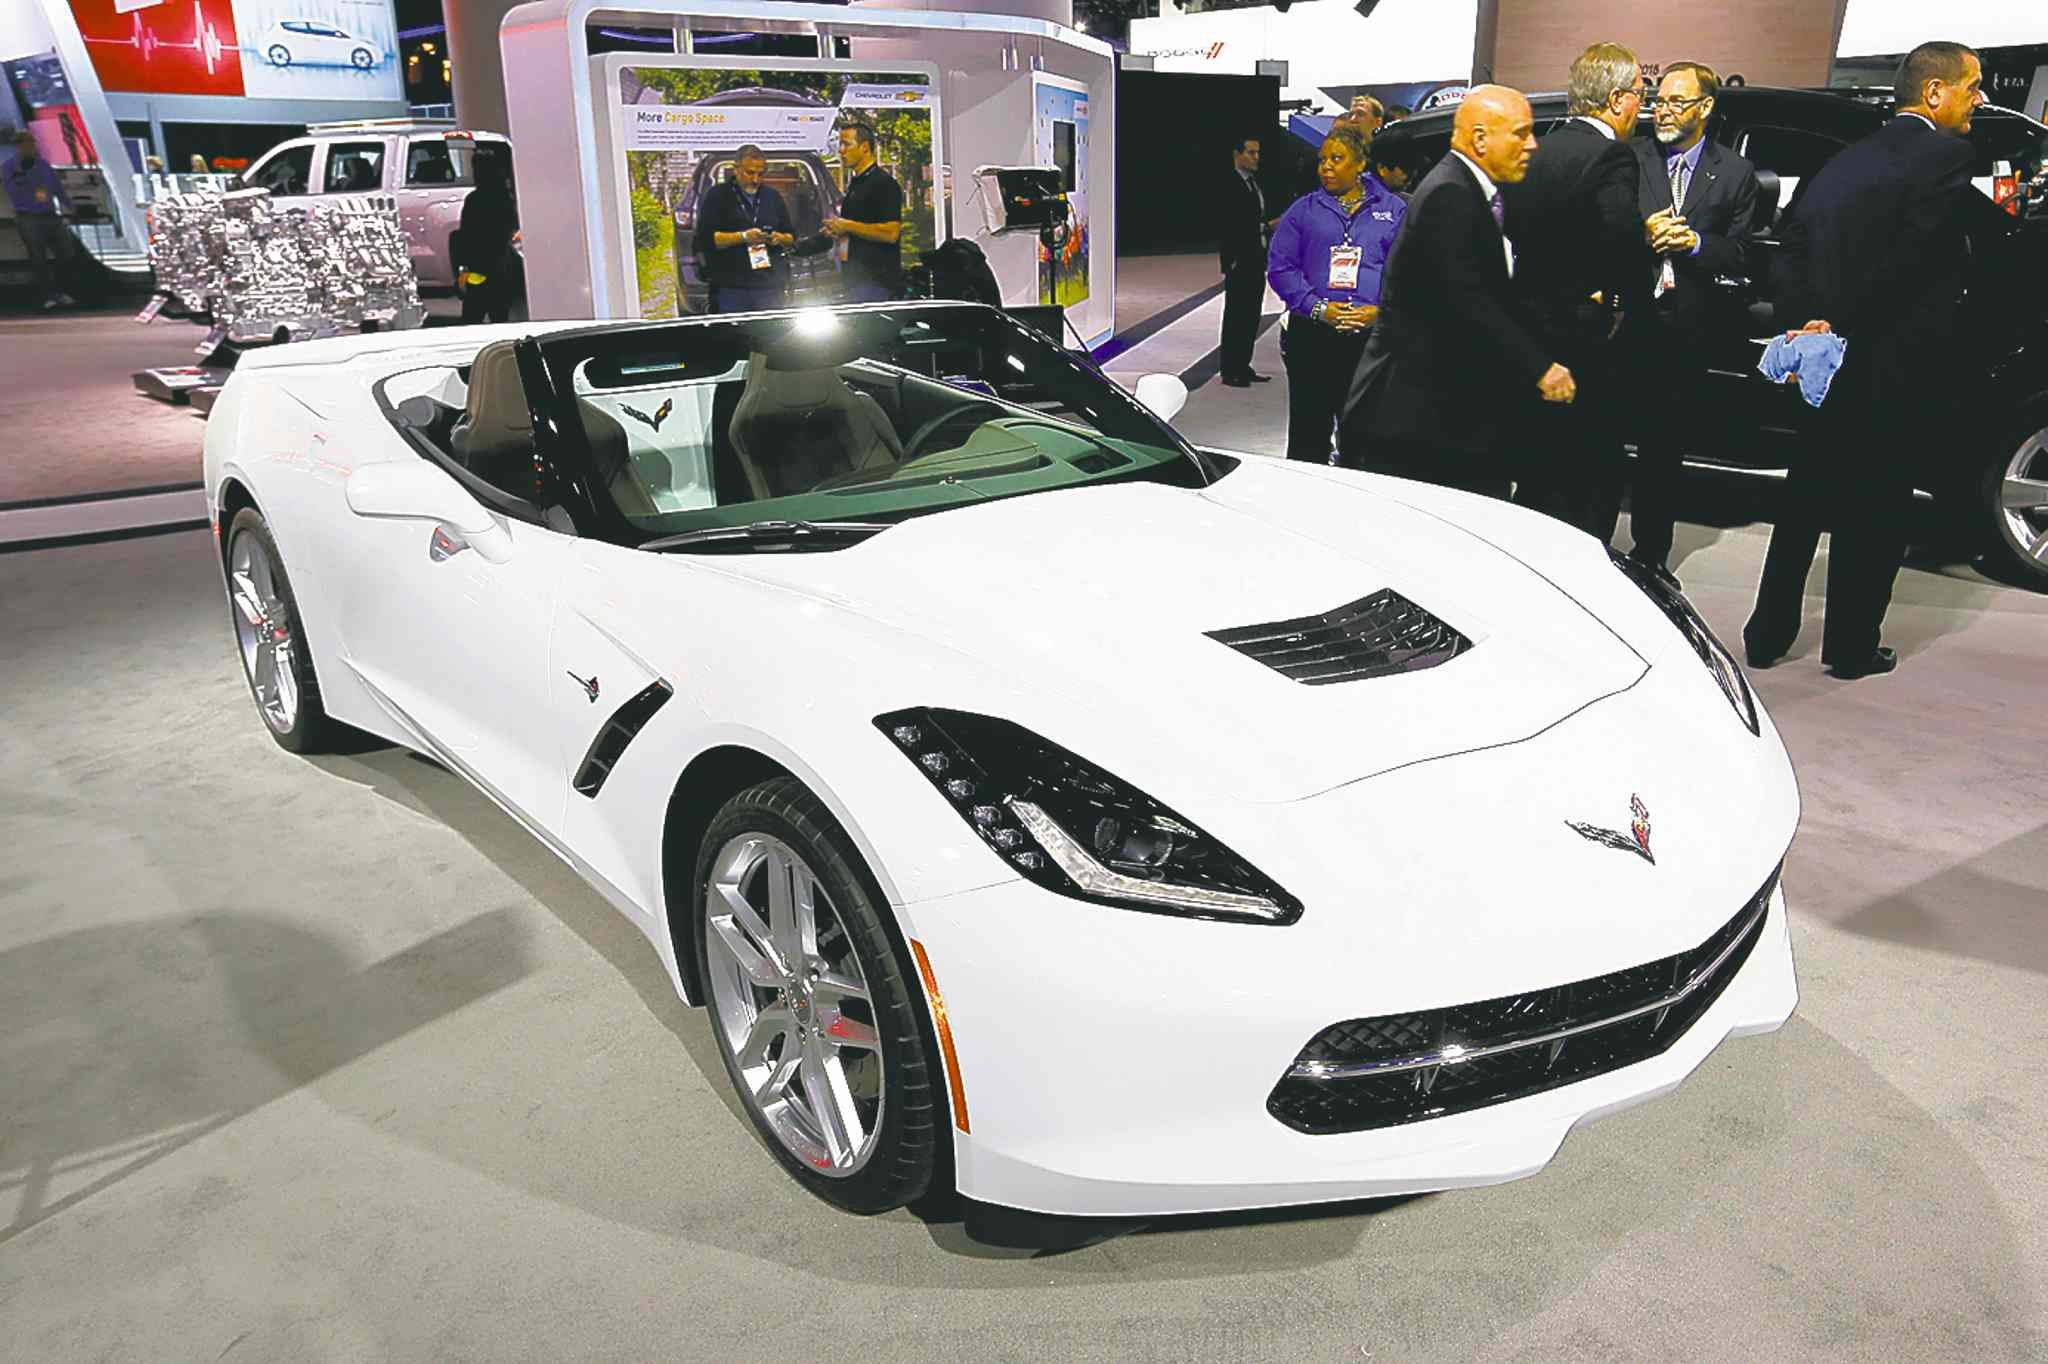 The Chevrolet Corvette Stingray and the Silverado took top honours Monday at the start of the North American International Auto Show in Detroit.